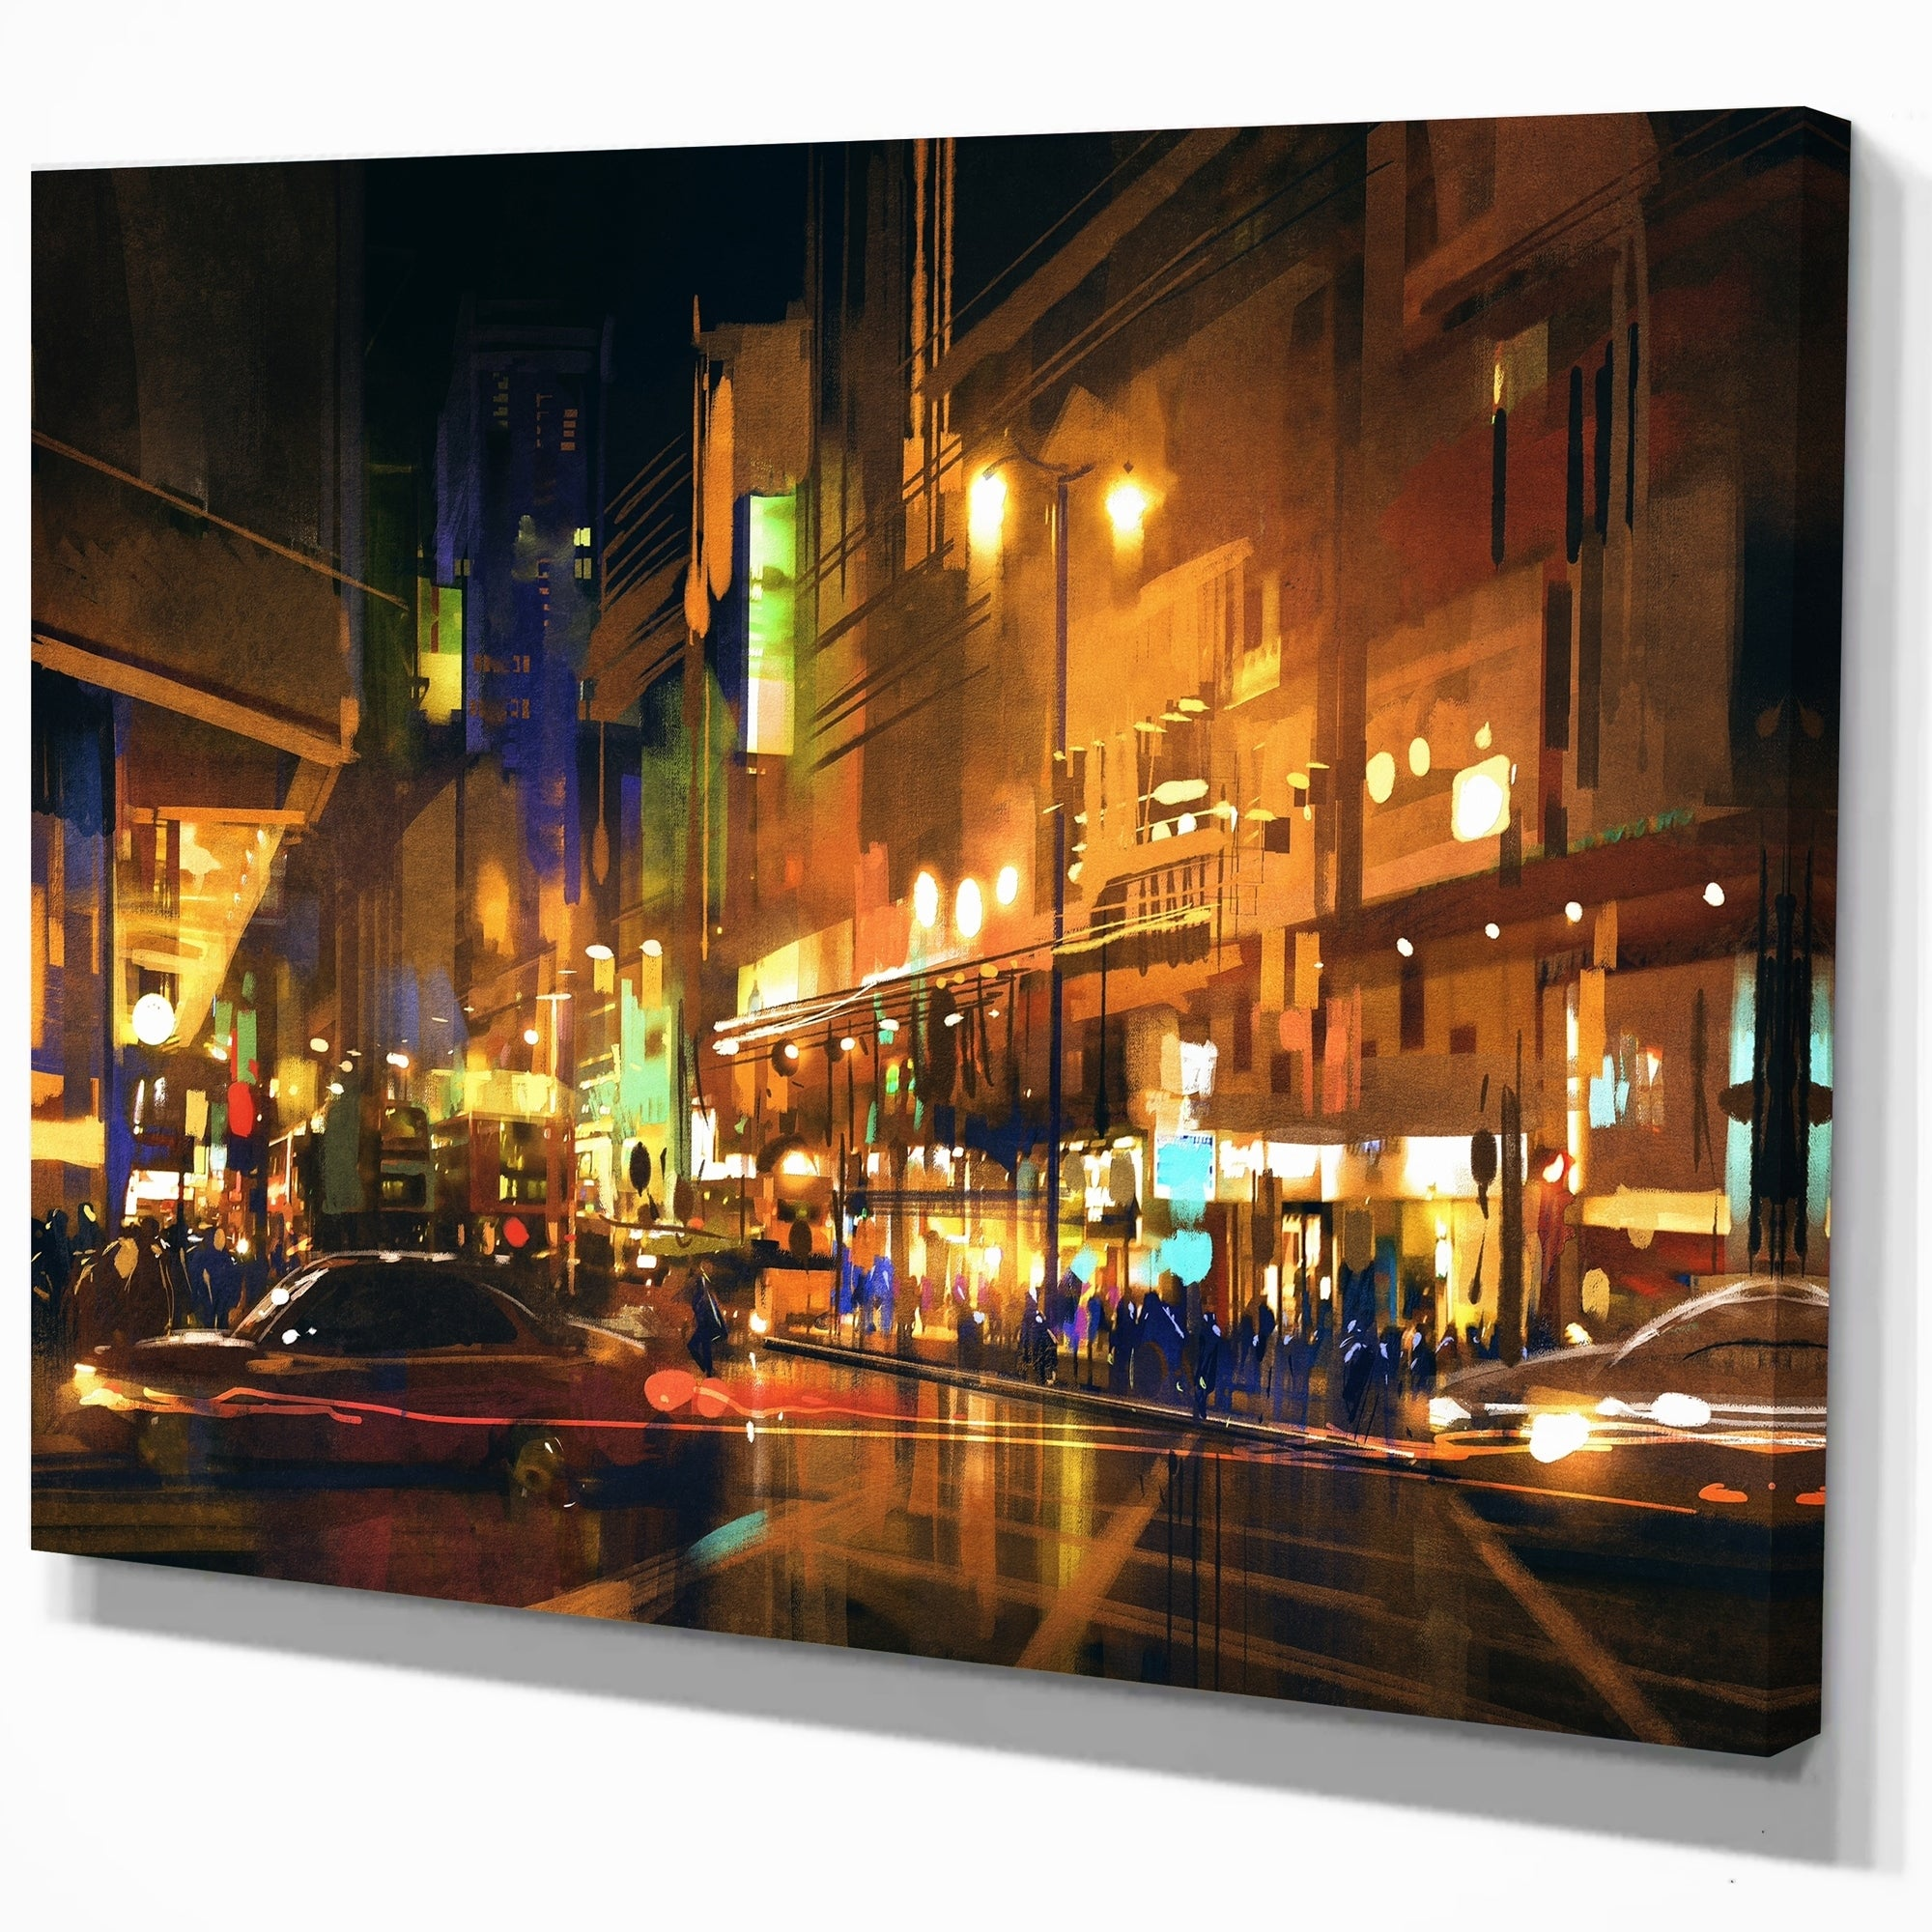 Designart City Street At Night With Colorful Lights Cityscapes Print On Wrapped Canvas Brown Overstock 21276657